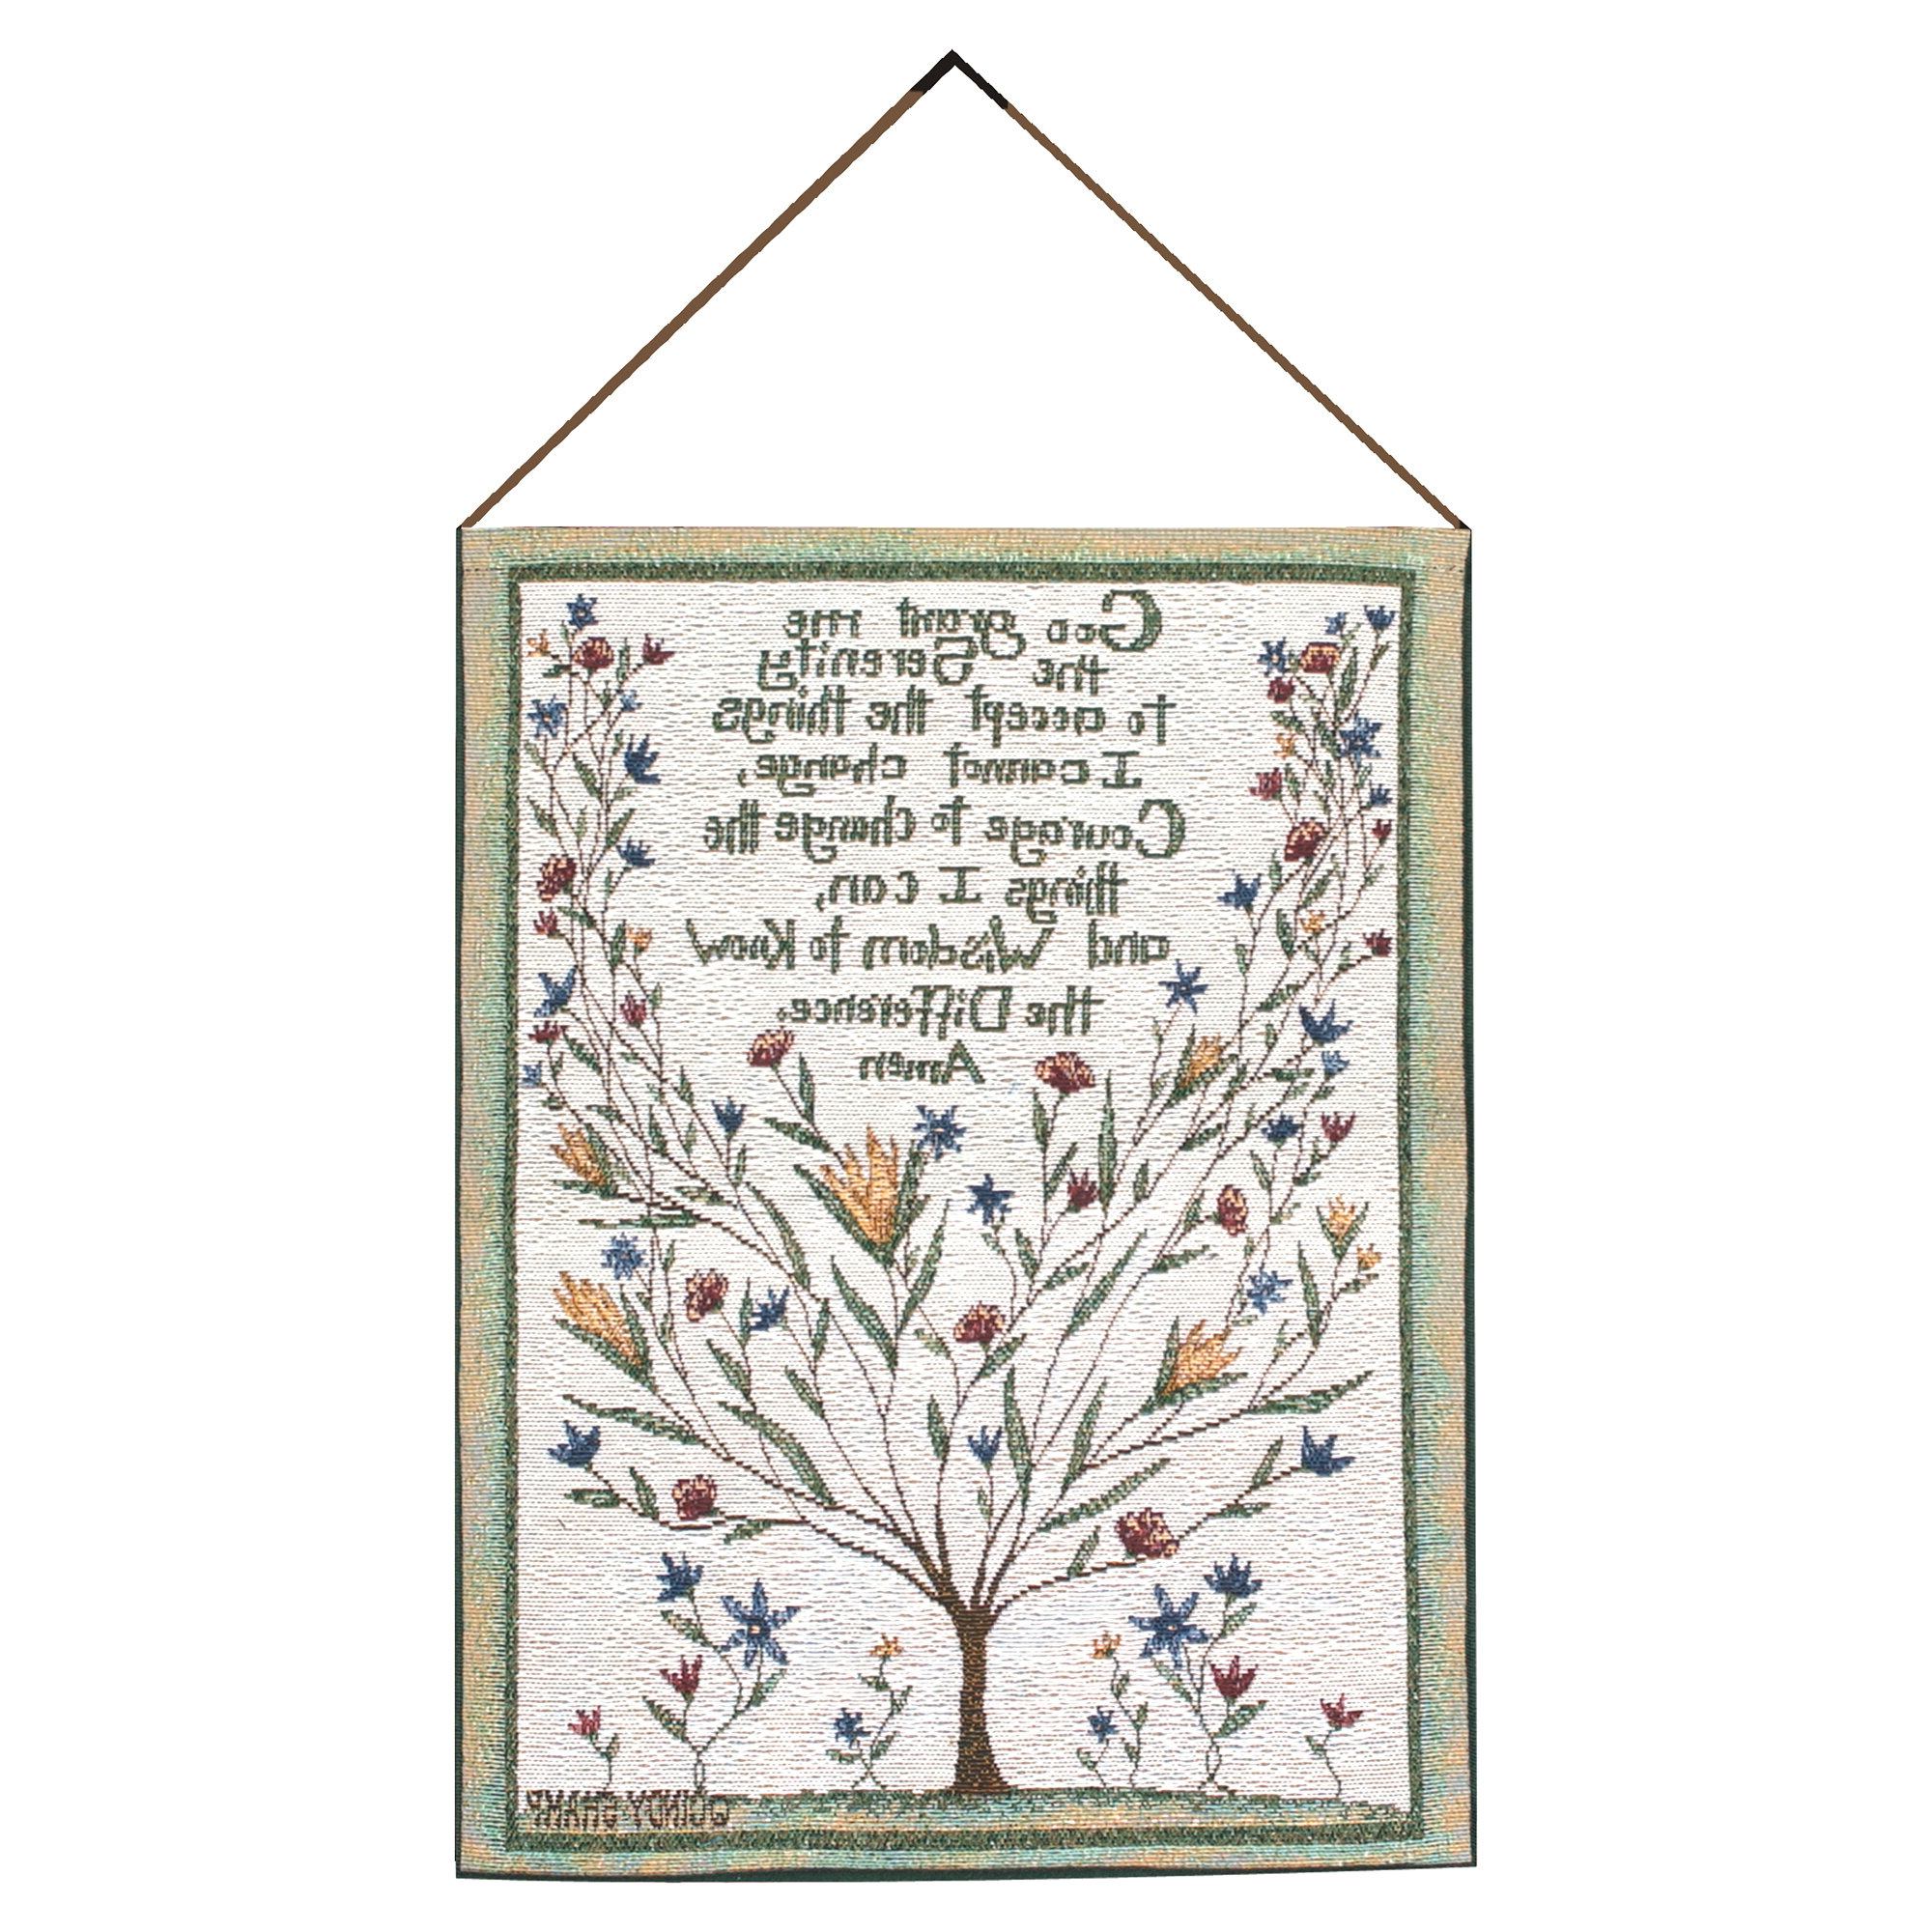 Trendy Serenity Prayer Tapestry And Wall Hanging Inside Blended Fabric Trust In The Lord Tapestries And Wall Hangings (View 16 of 20)